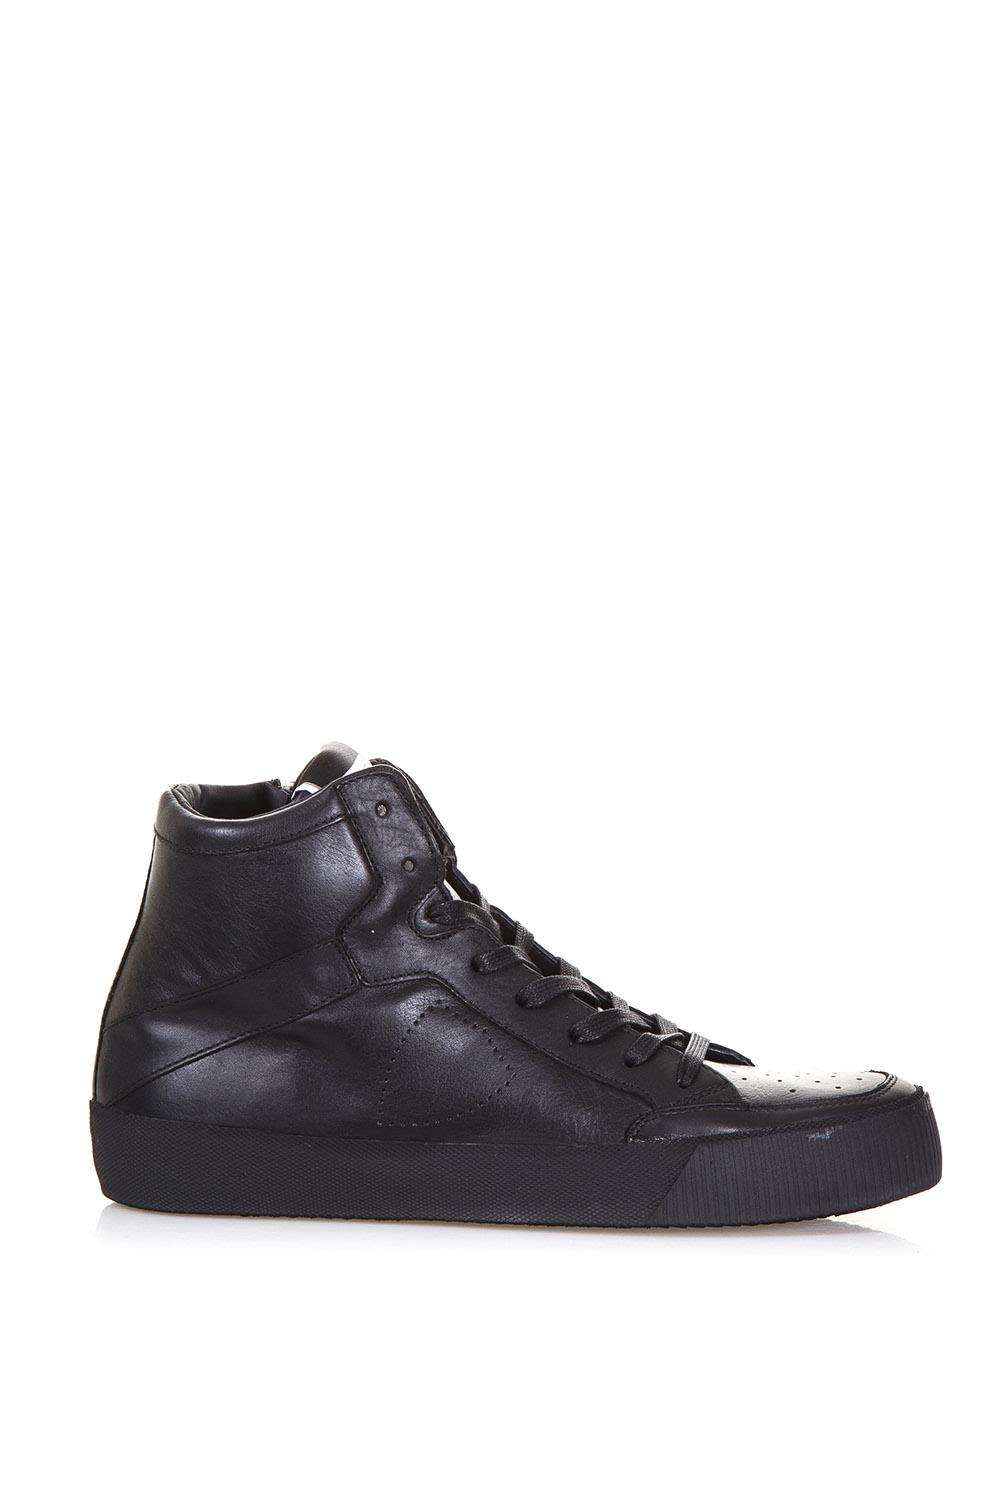 Philippe Model Lens High Leather Sneakers